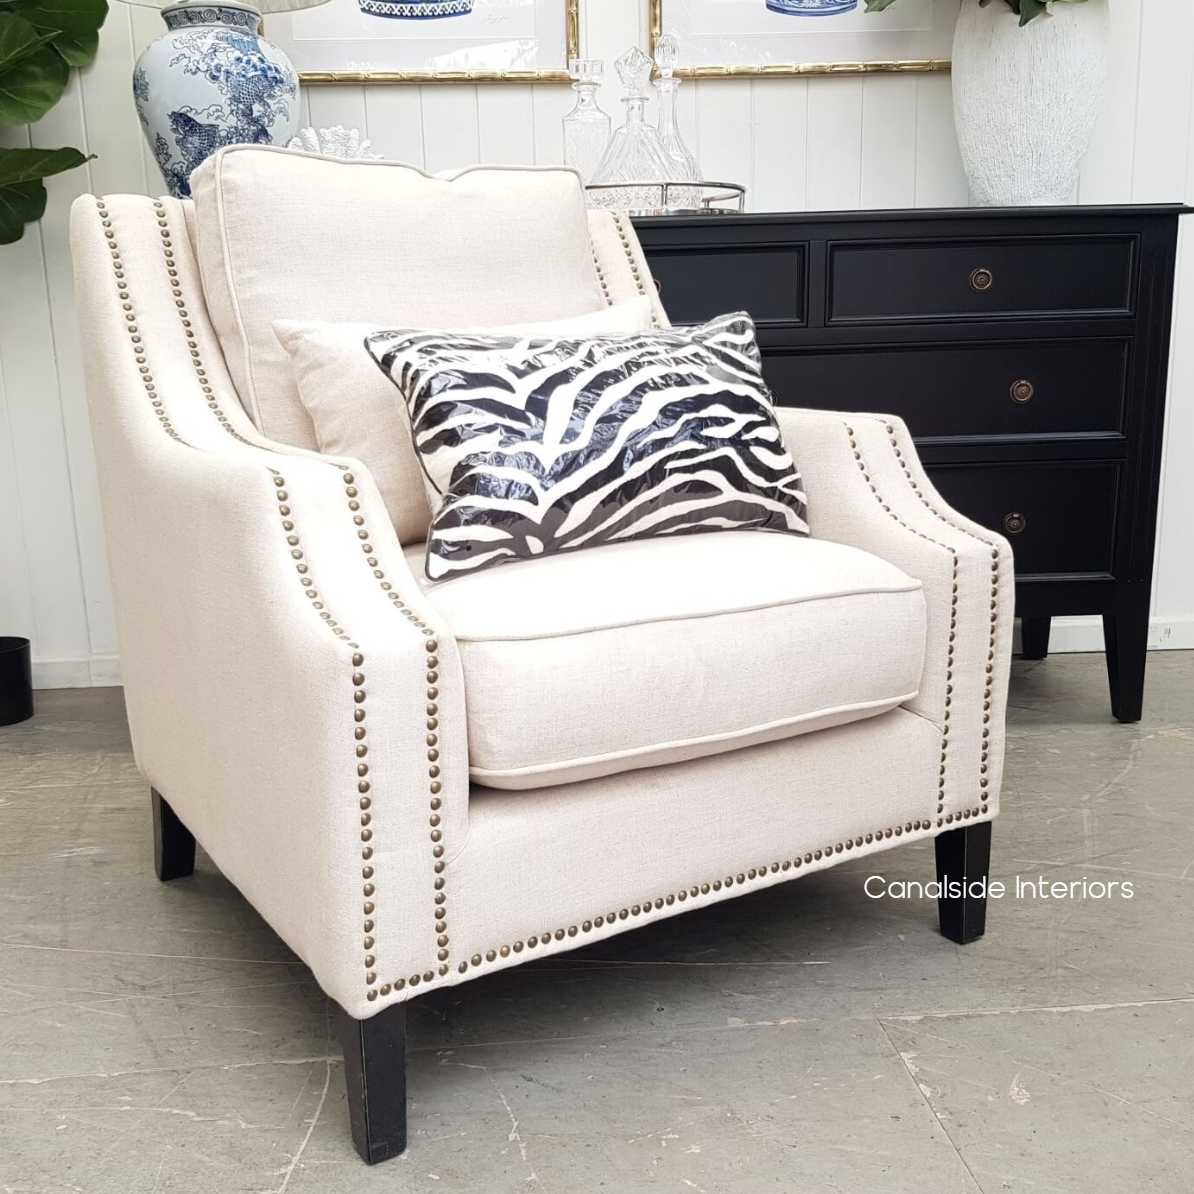 Atwood Armchair  CHAIRS, HAMPTONS Style, PLANTATION Style, CHAIRS Lounge, LIVING Room, LIVING Chairs